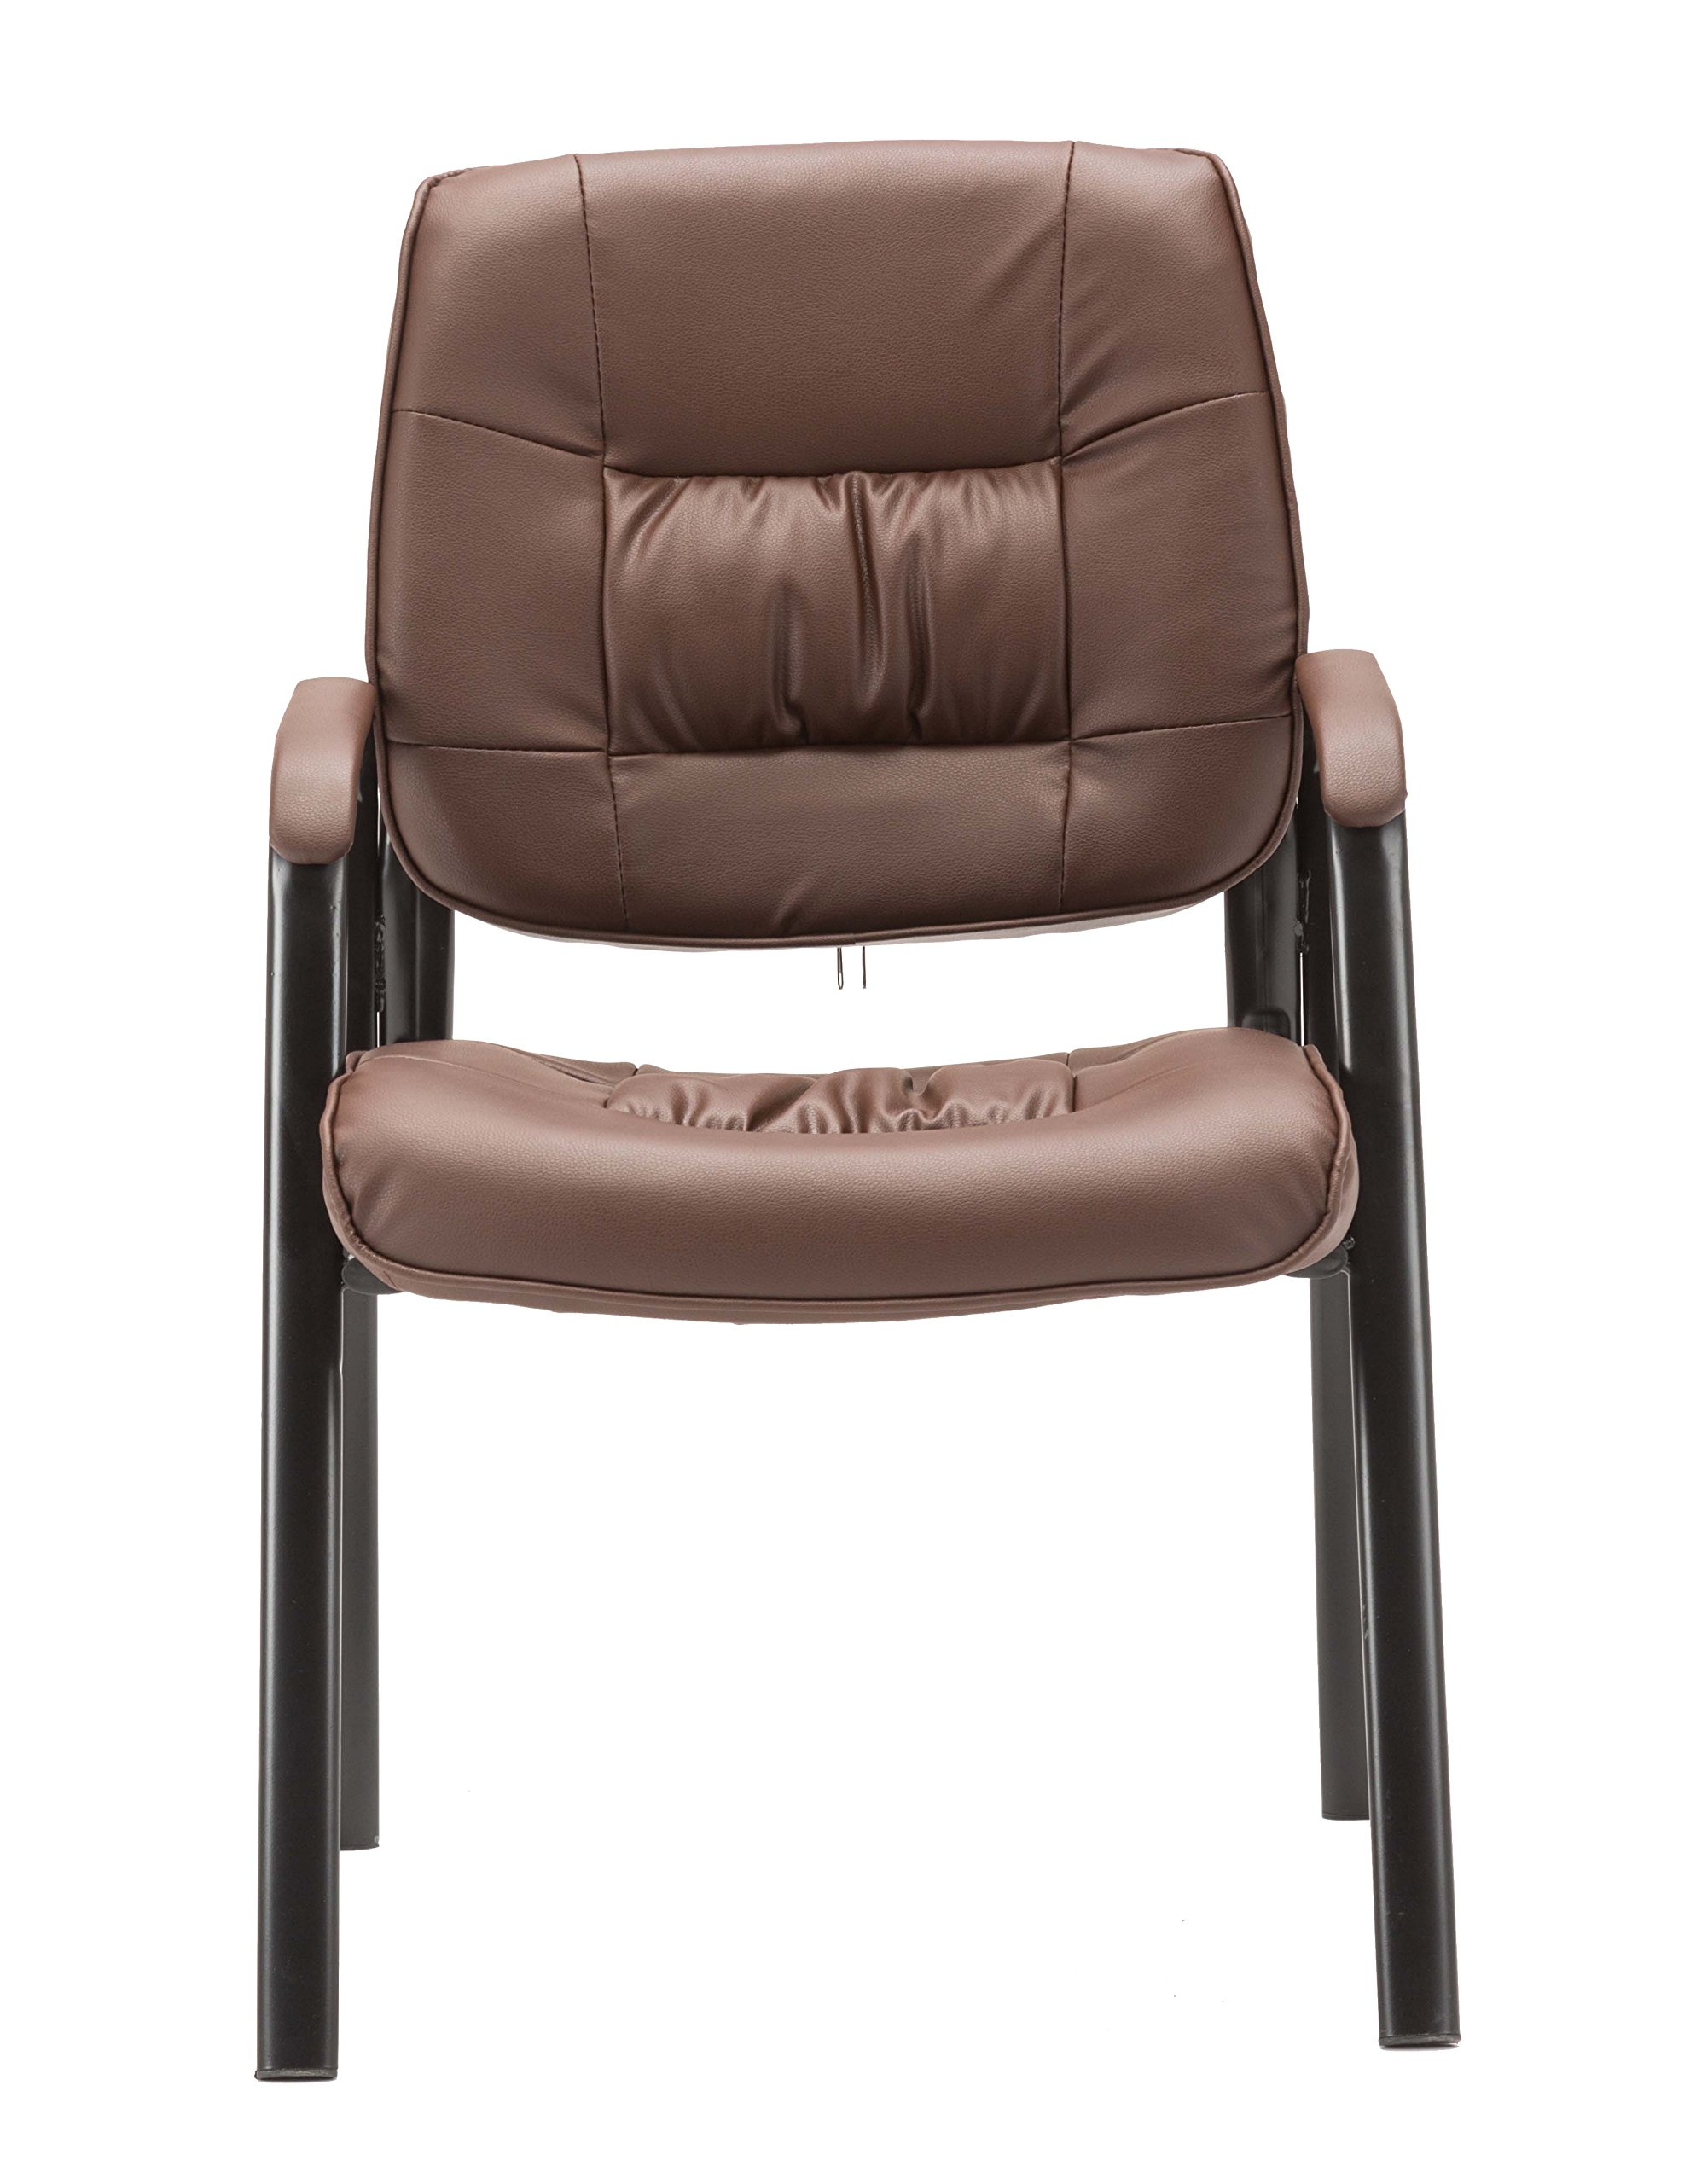 BTEXPERT 5046BR 8014 Premium PU Leather Office Reception Side Conference Chair, Brown